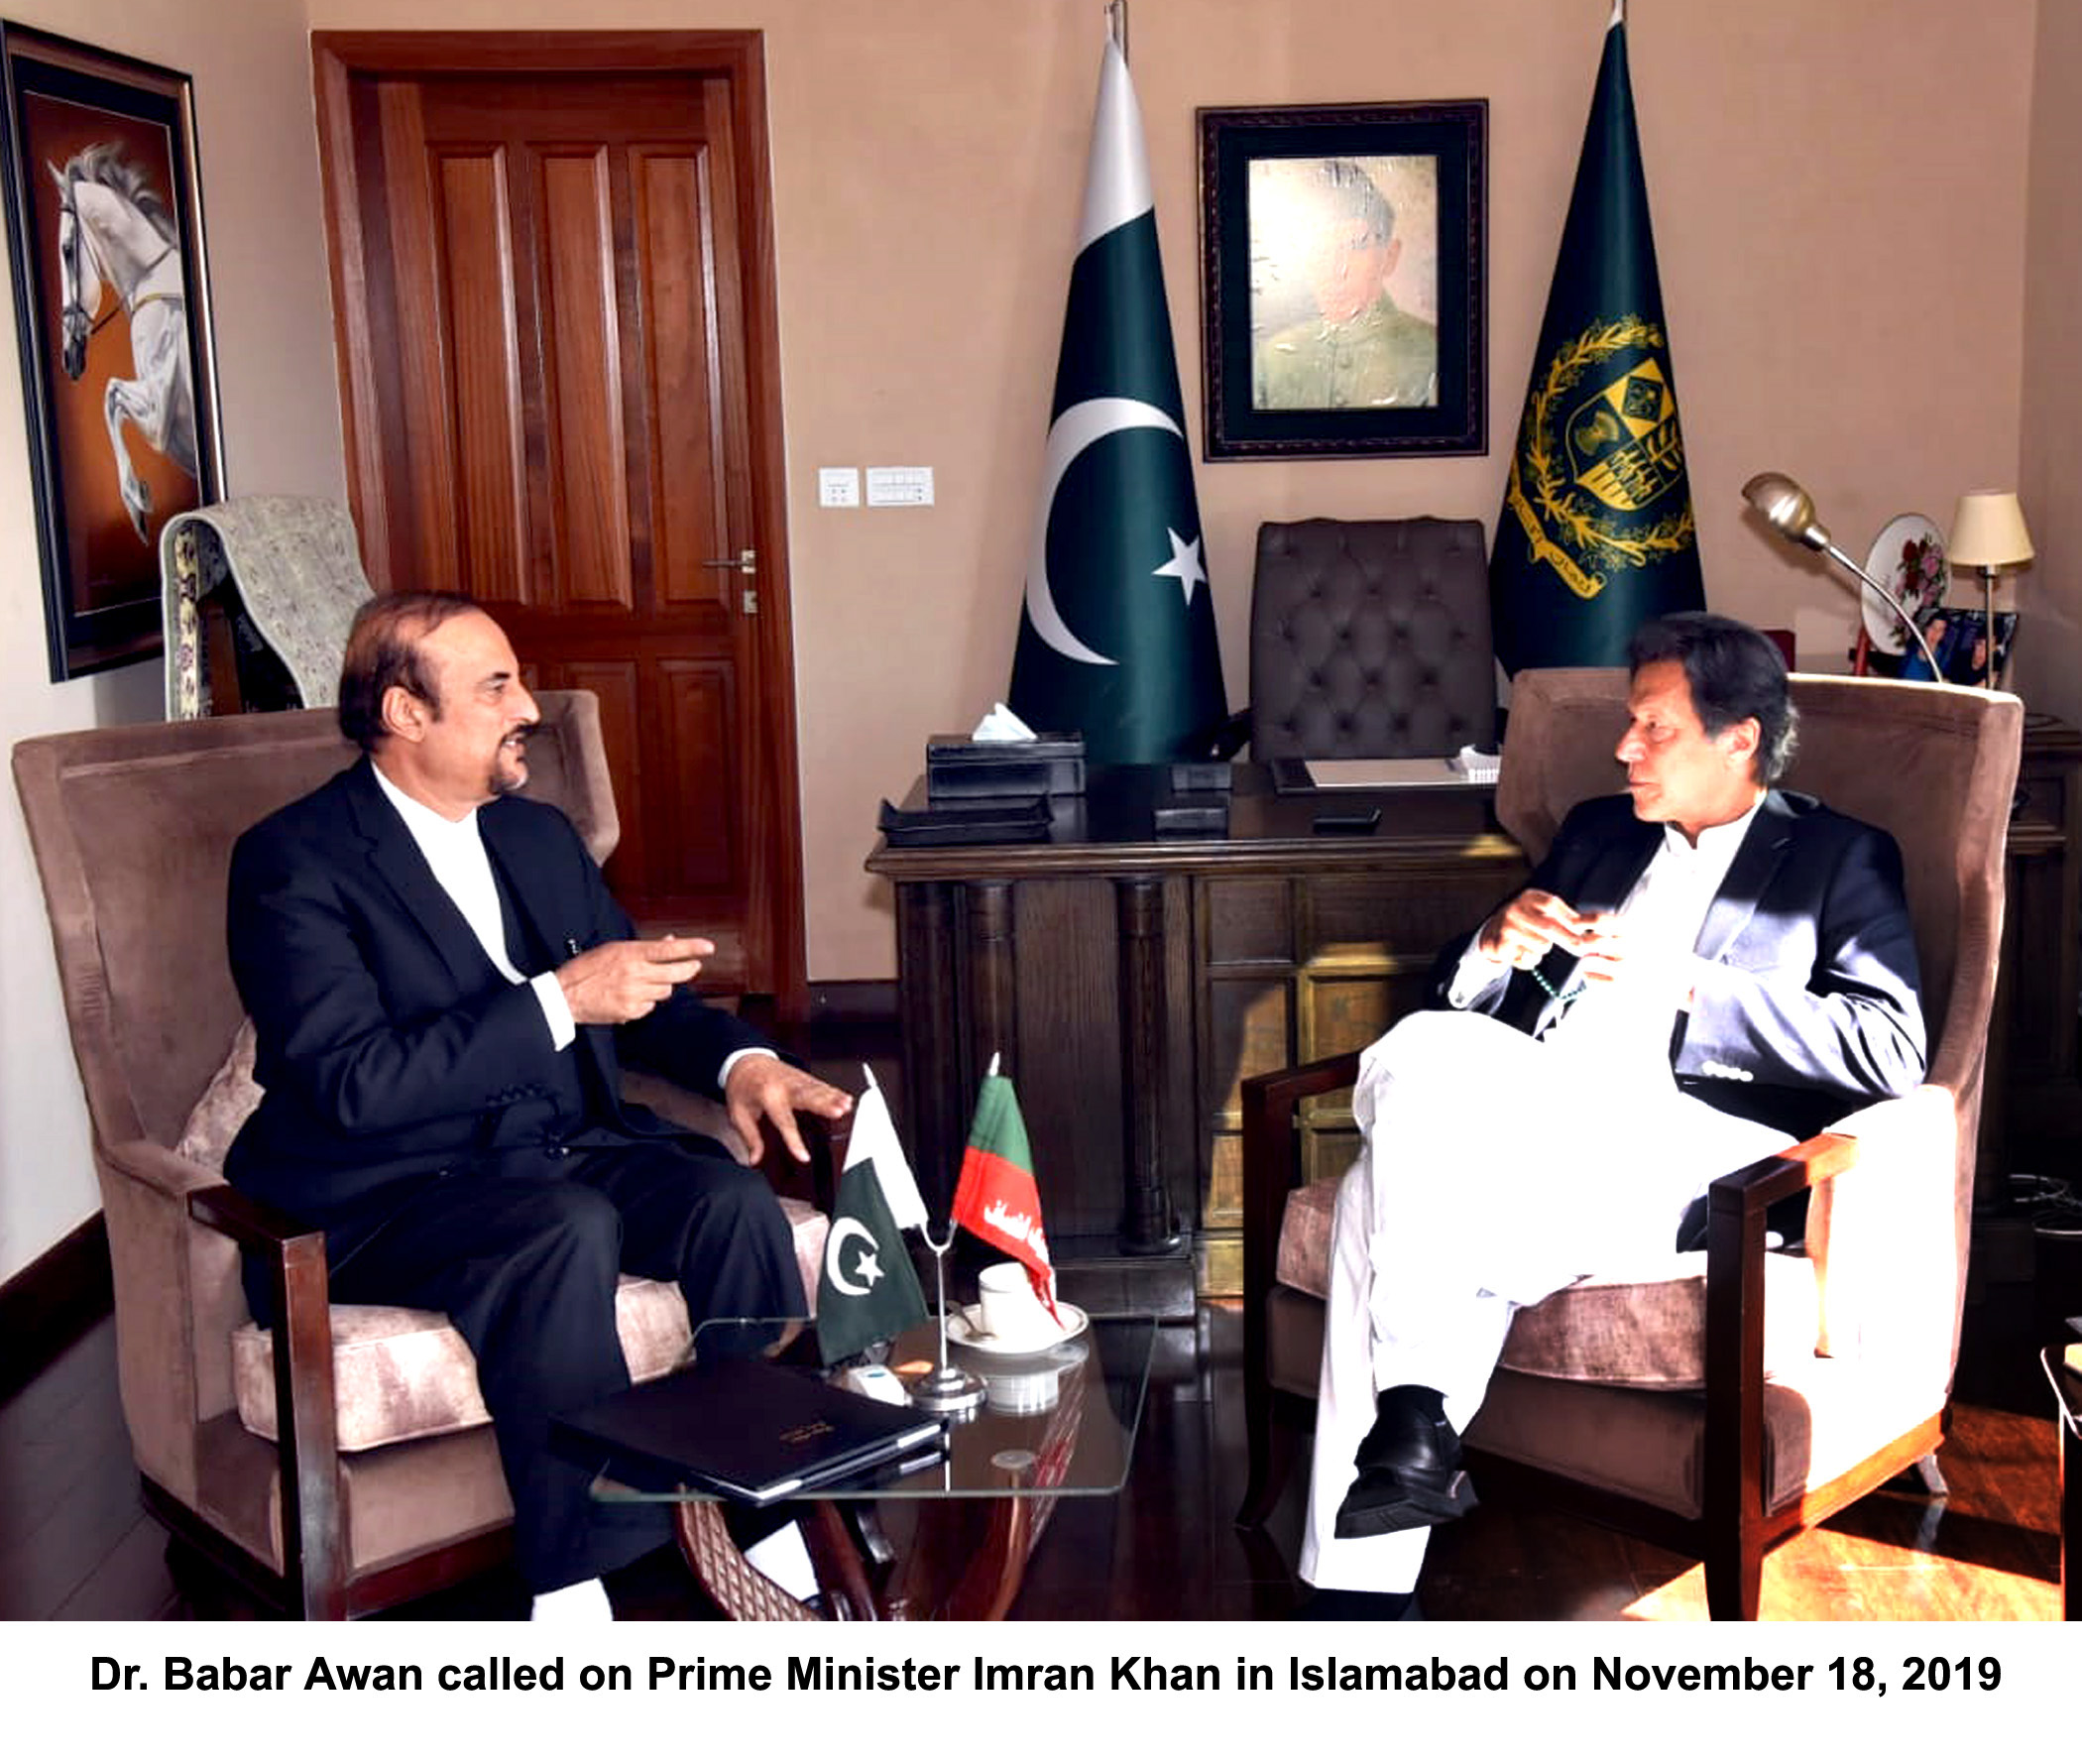 Dr. Babar Awan calls on Prime Minister Imran Khan in Islamabad on Monday. PHOTO: PID